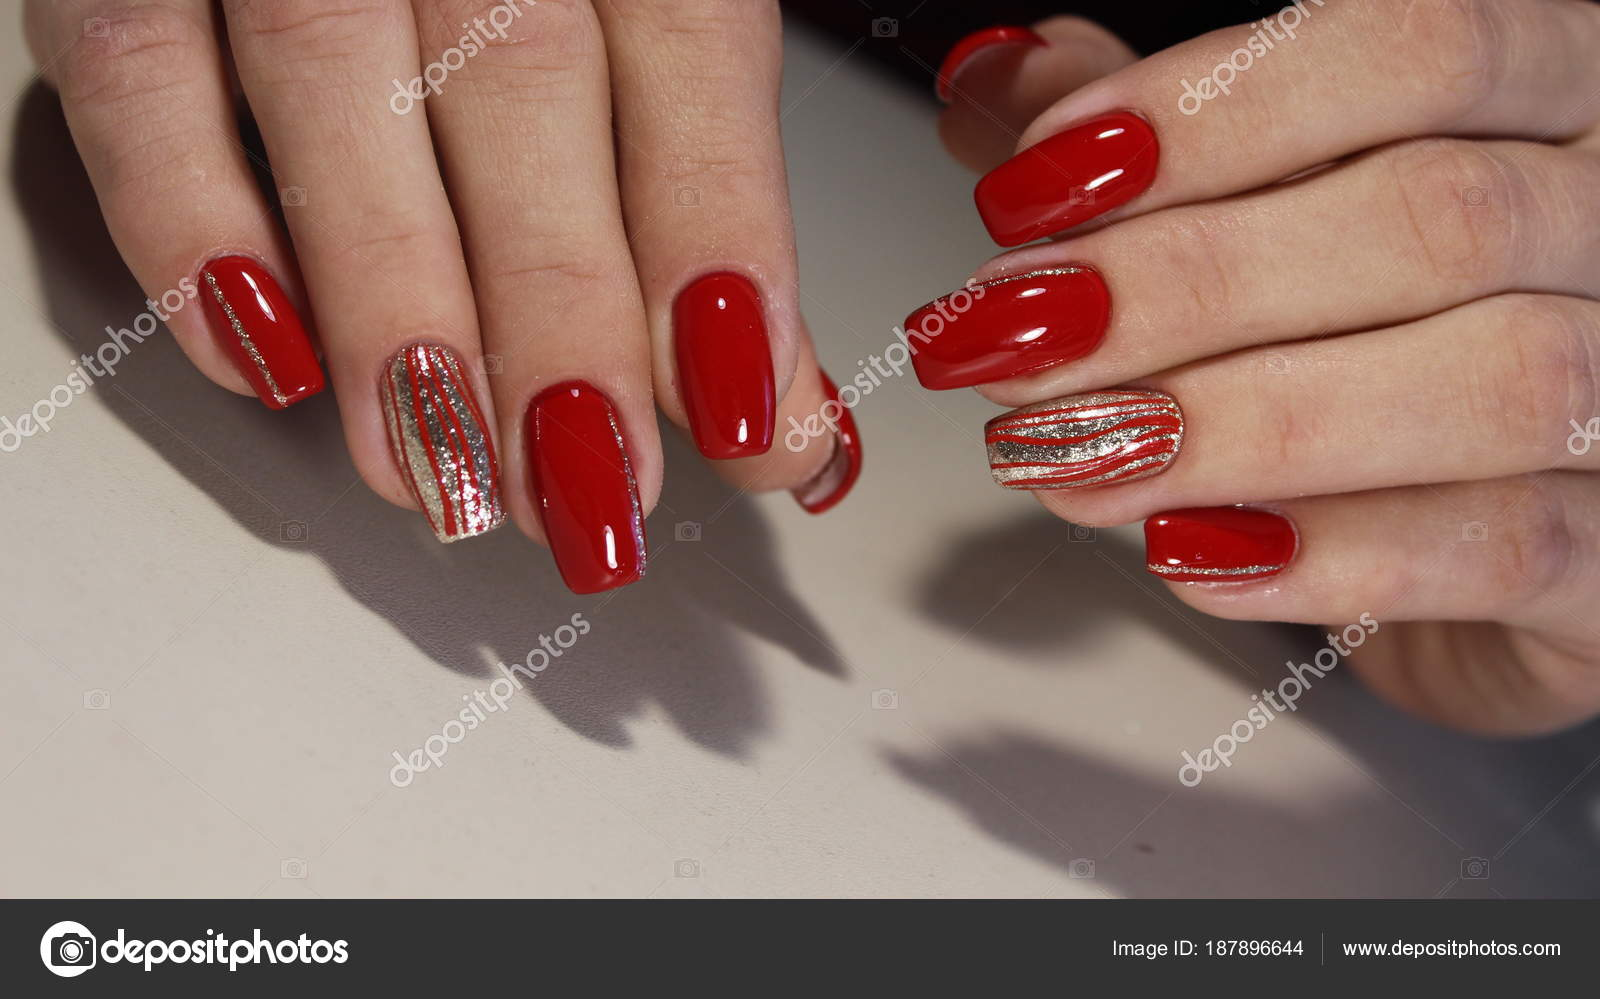 Nail Designs Red Colors Stock Photo C Smirmaxstock 187896644